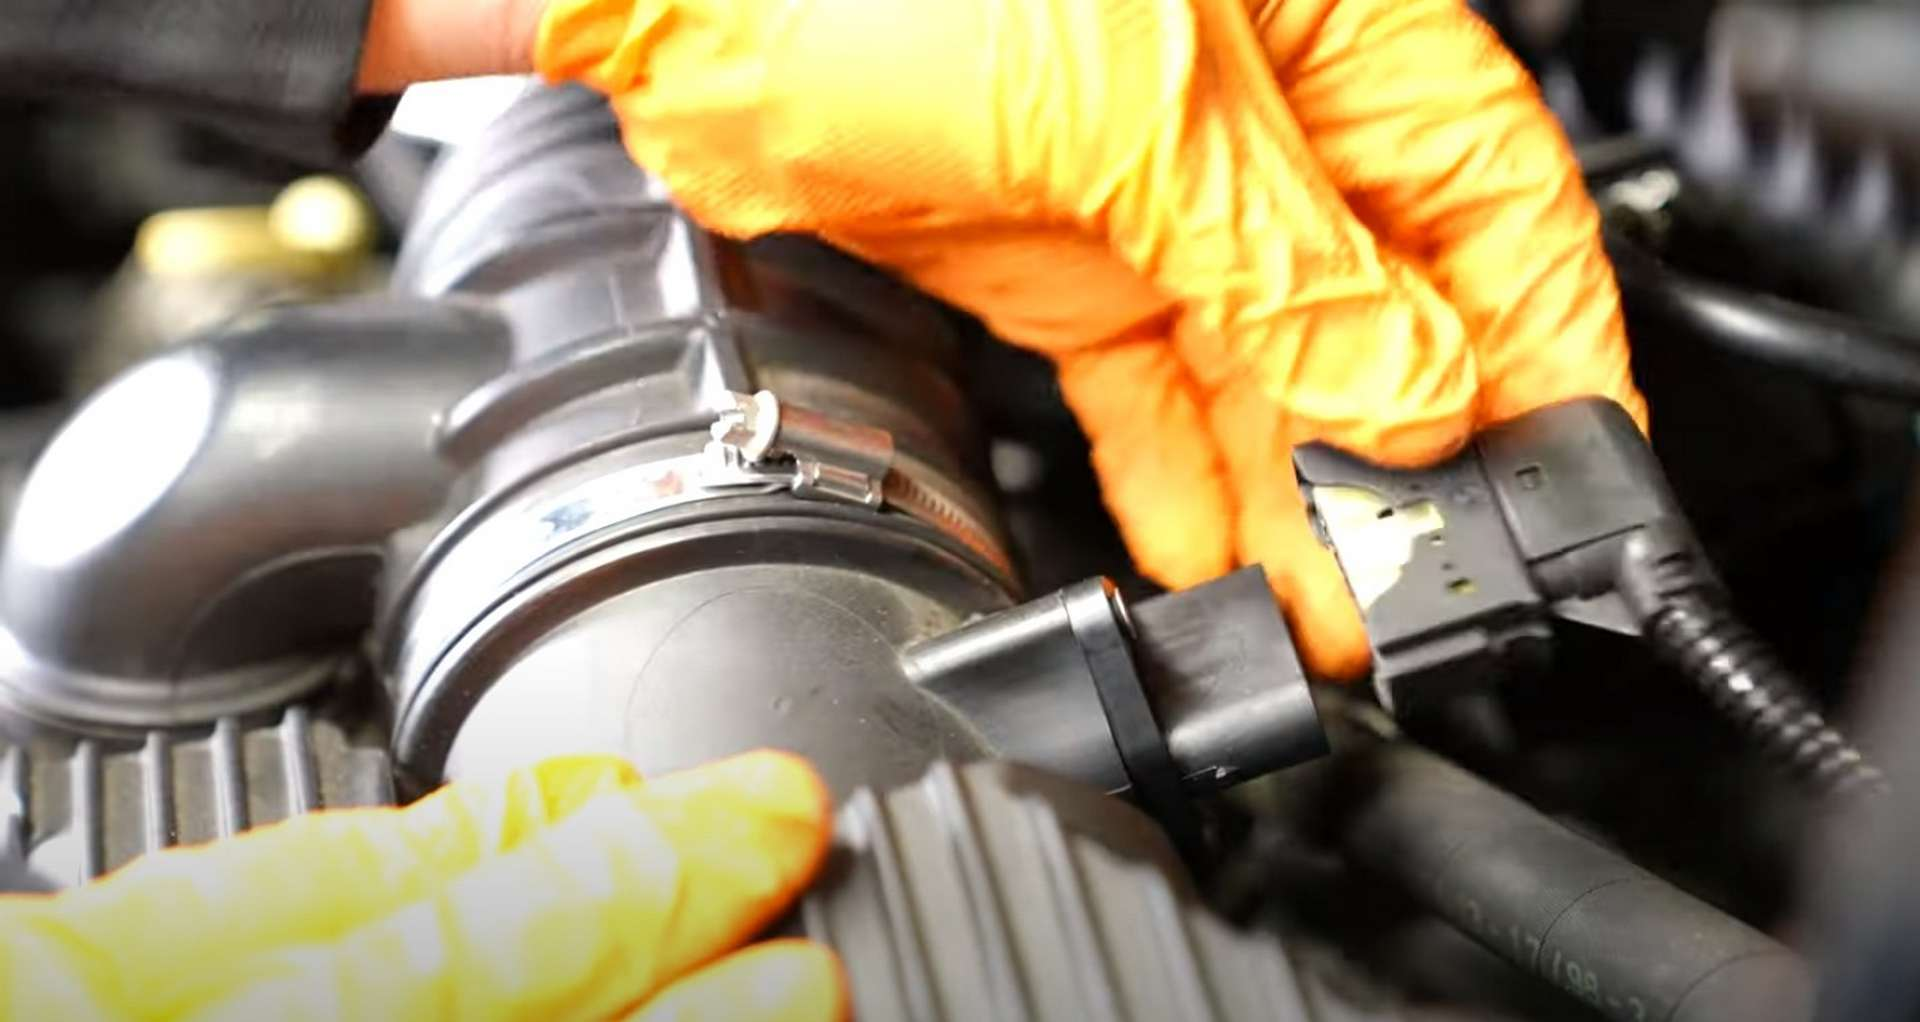 Porsche 996 Engine Mount Replacement removing the oil filler neck from the airbox